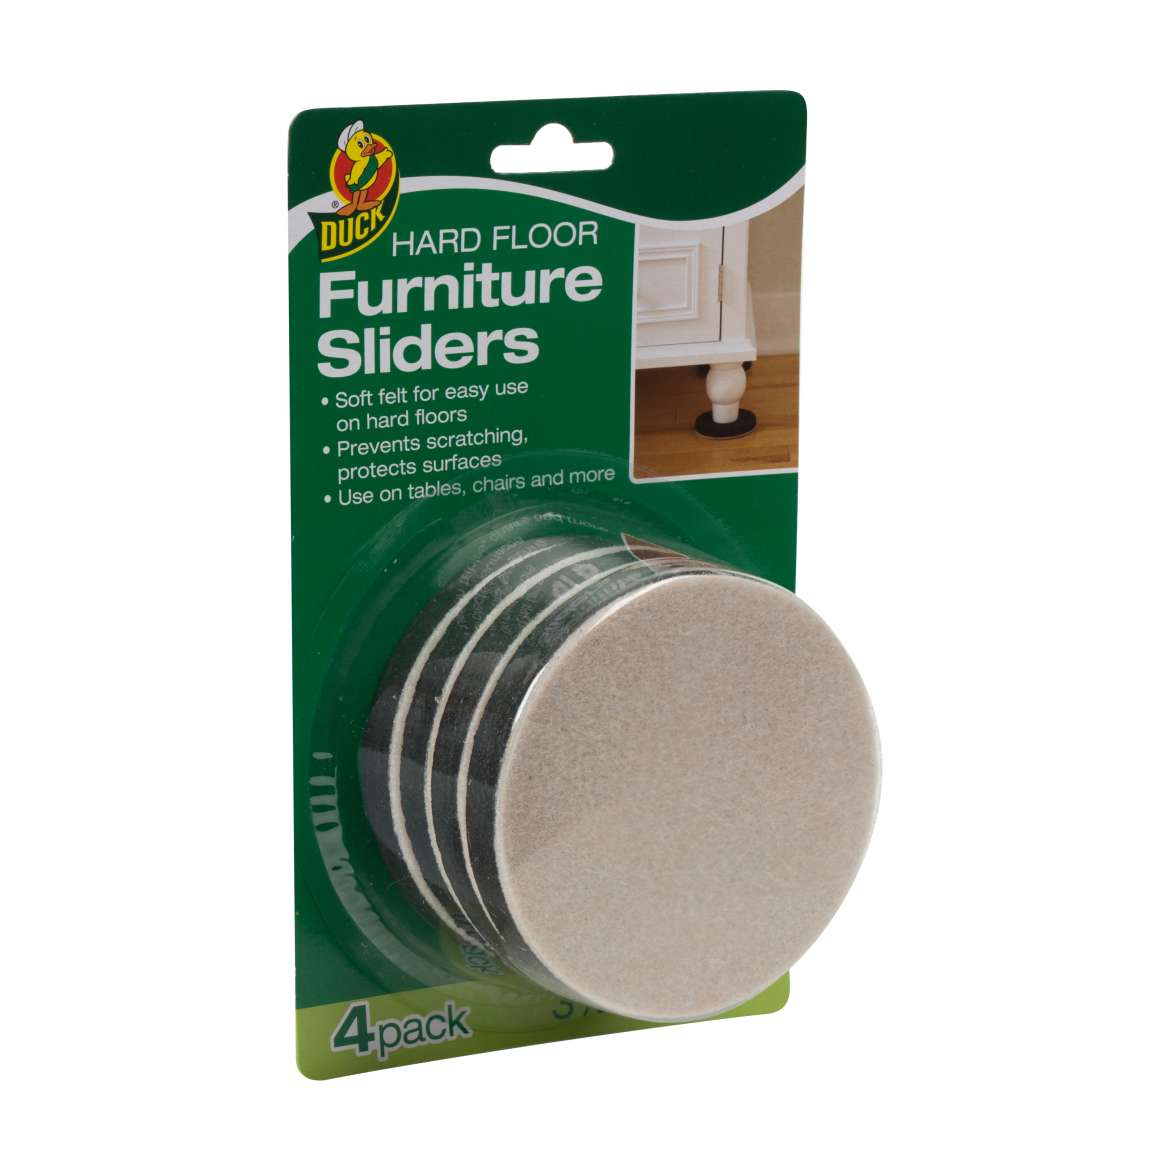 Duck® Brand Felt Hard Floor Furniture Sliders - Brown, 3.5 in. Image